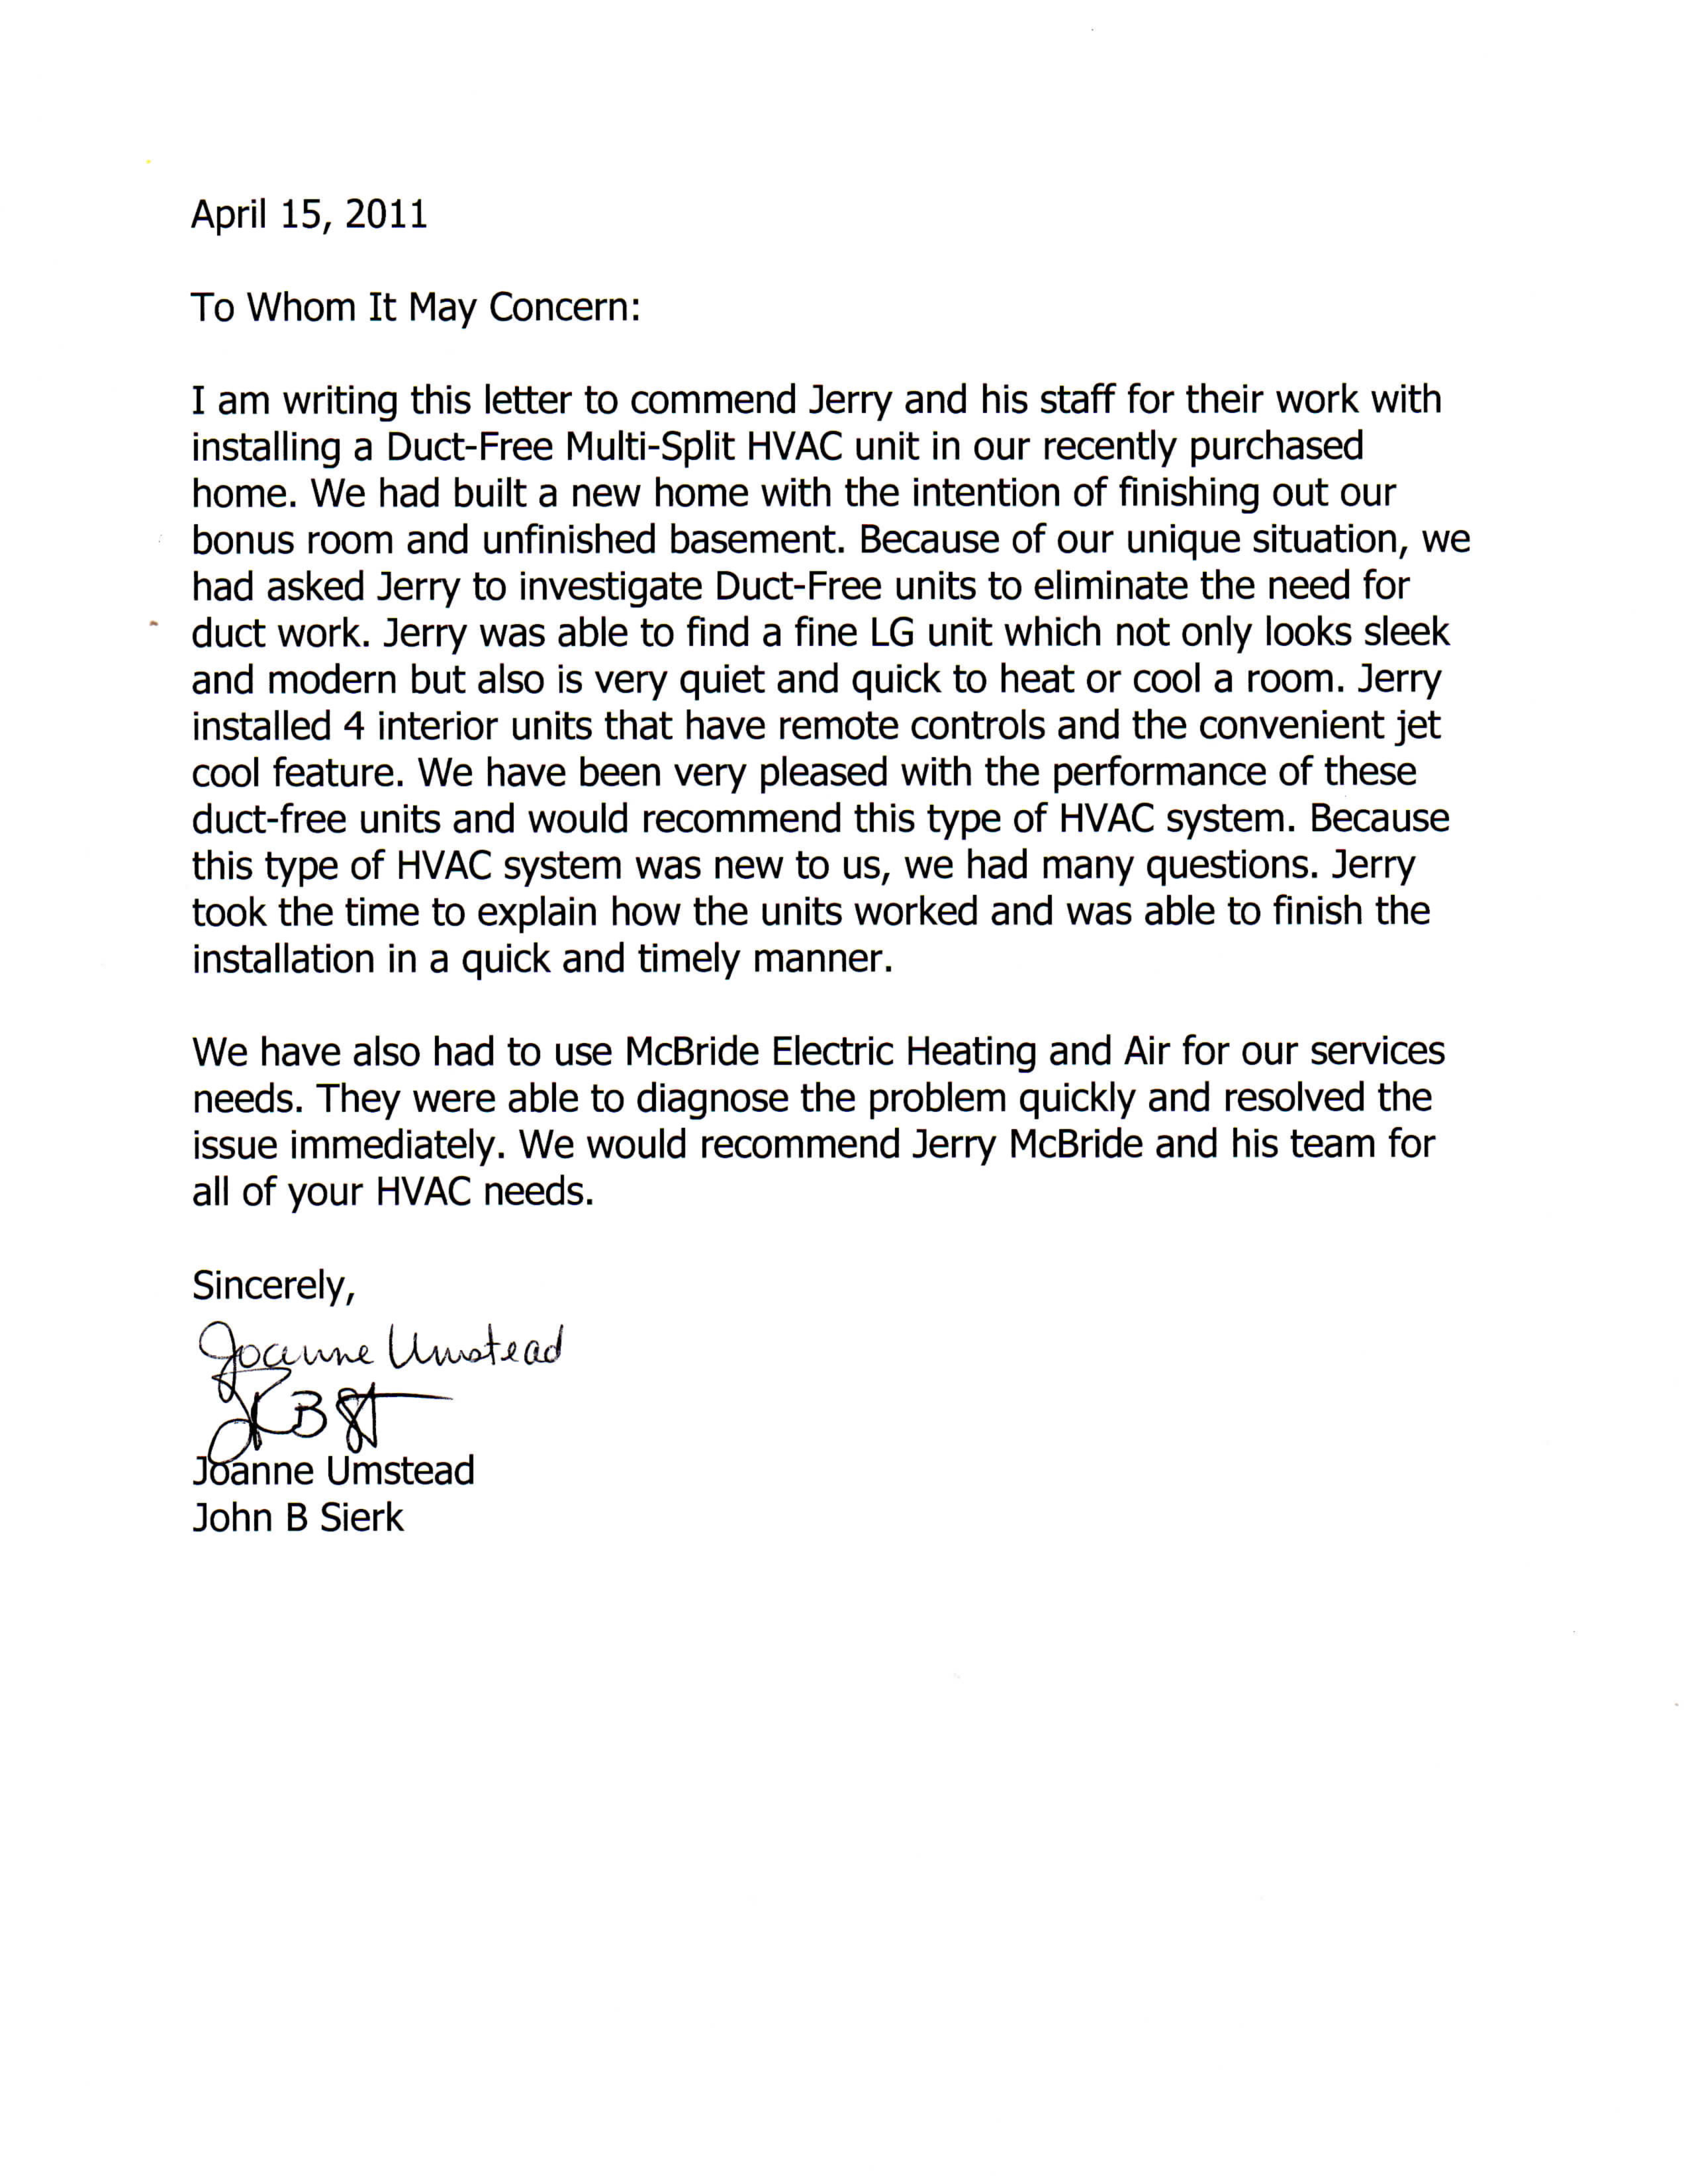 Customer Reference Letter Template - Civil Essay Buy College Essays Line top Writers Online Letter